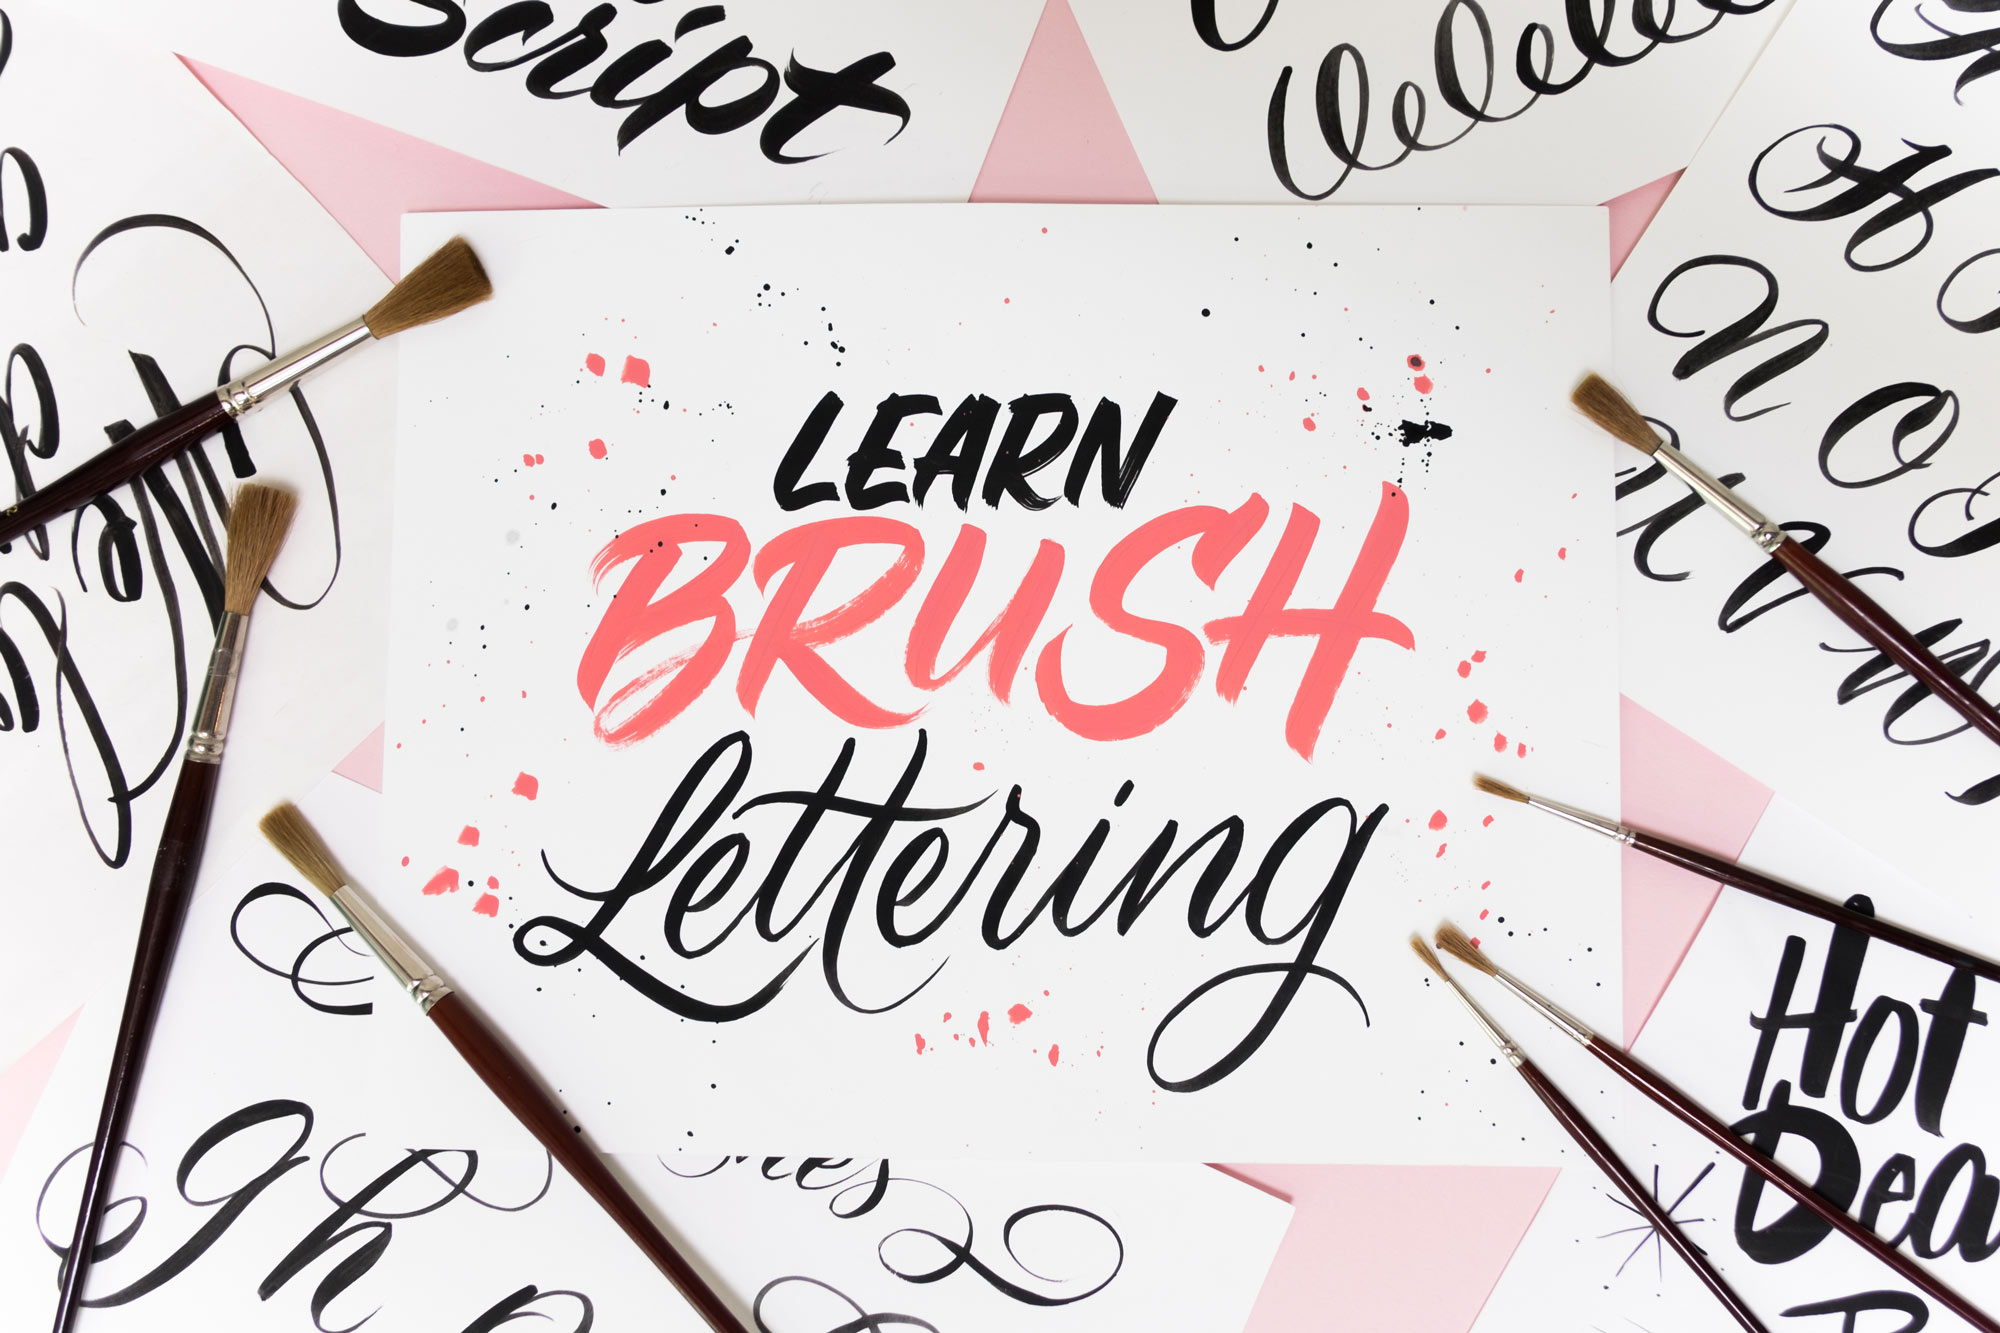 Learn Brush Lettering - Lettering Tutorial